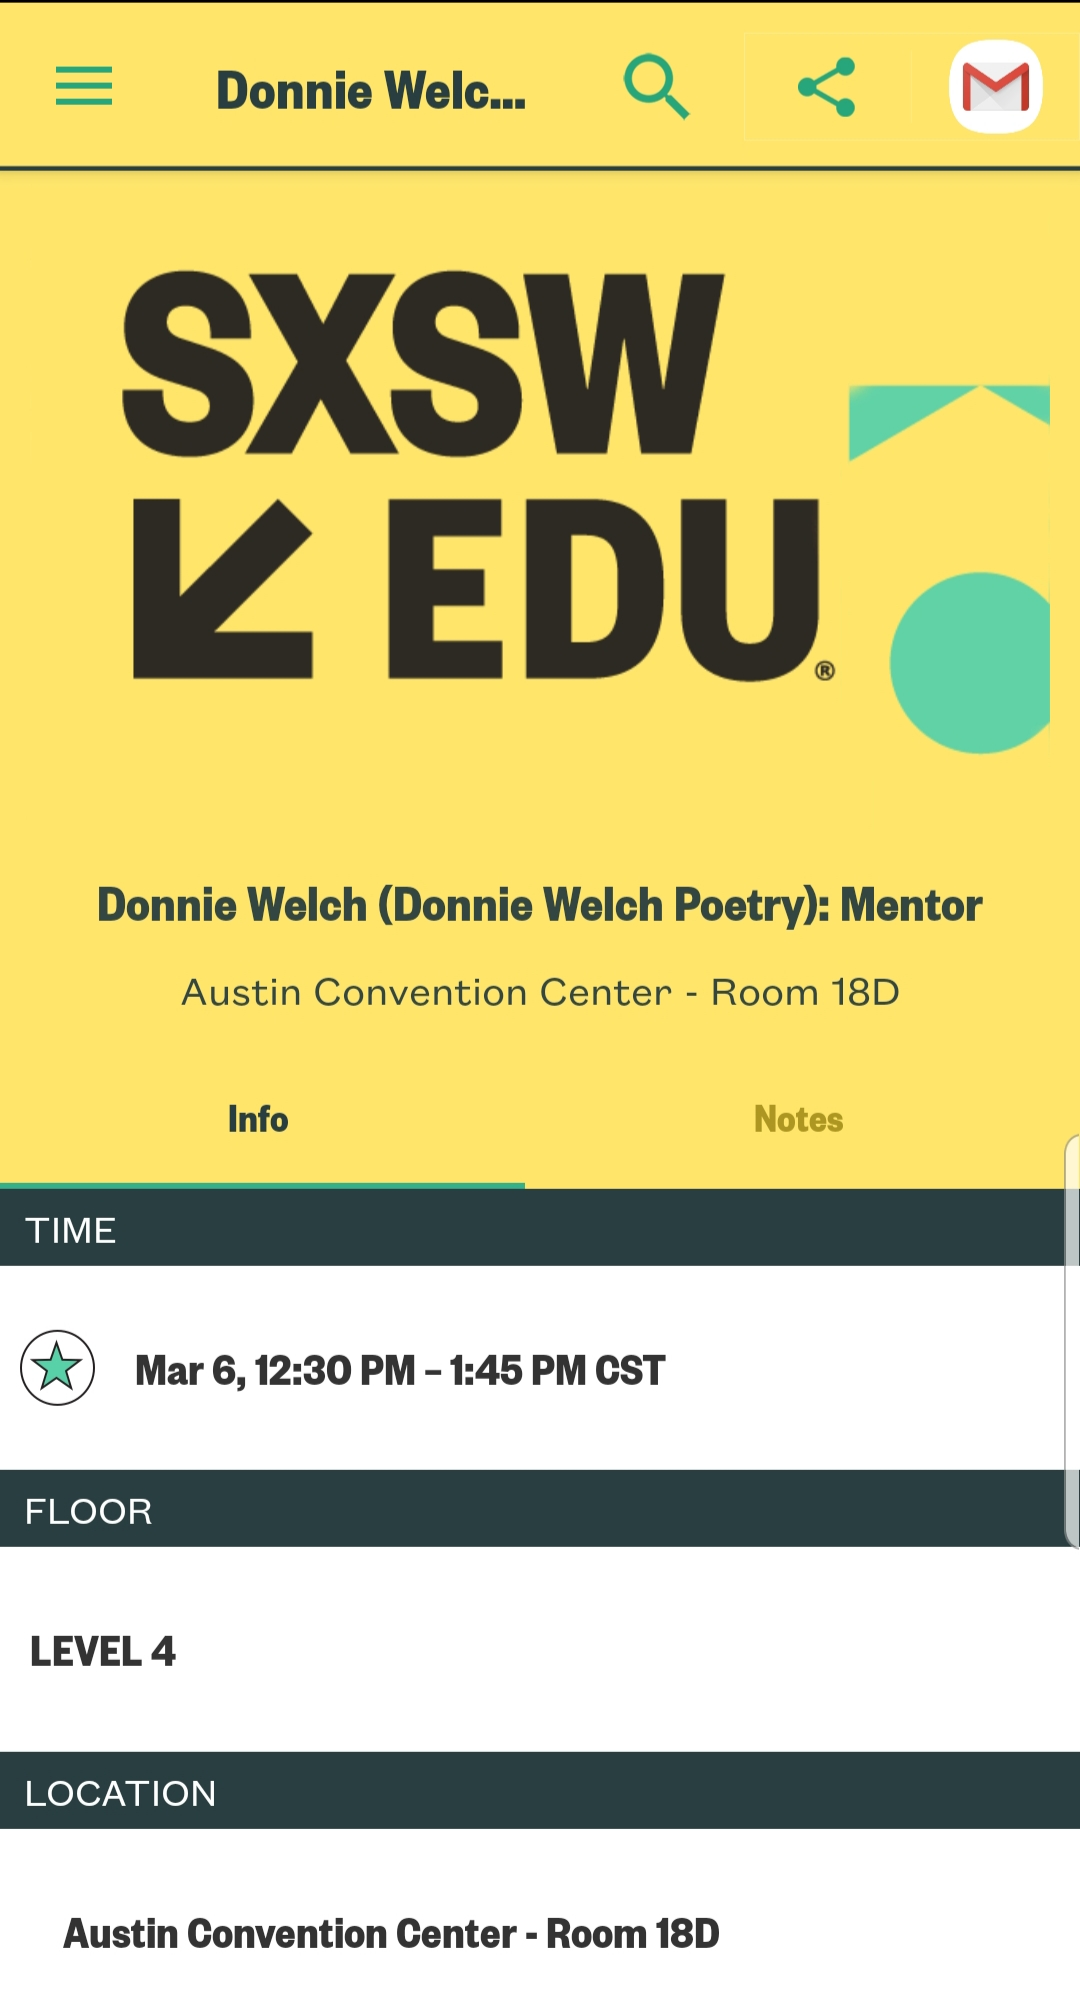 Screenshot from the SXSWeud App with the SXSW logo and a bright yellow background up top. Below that in tiers of information are the details and location to a mentor session with Donnie Welch